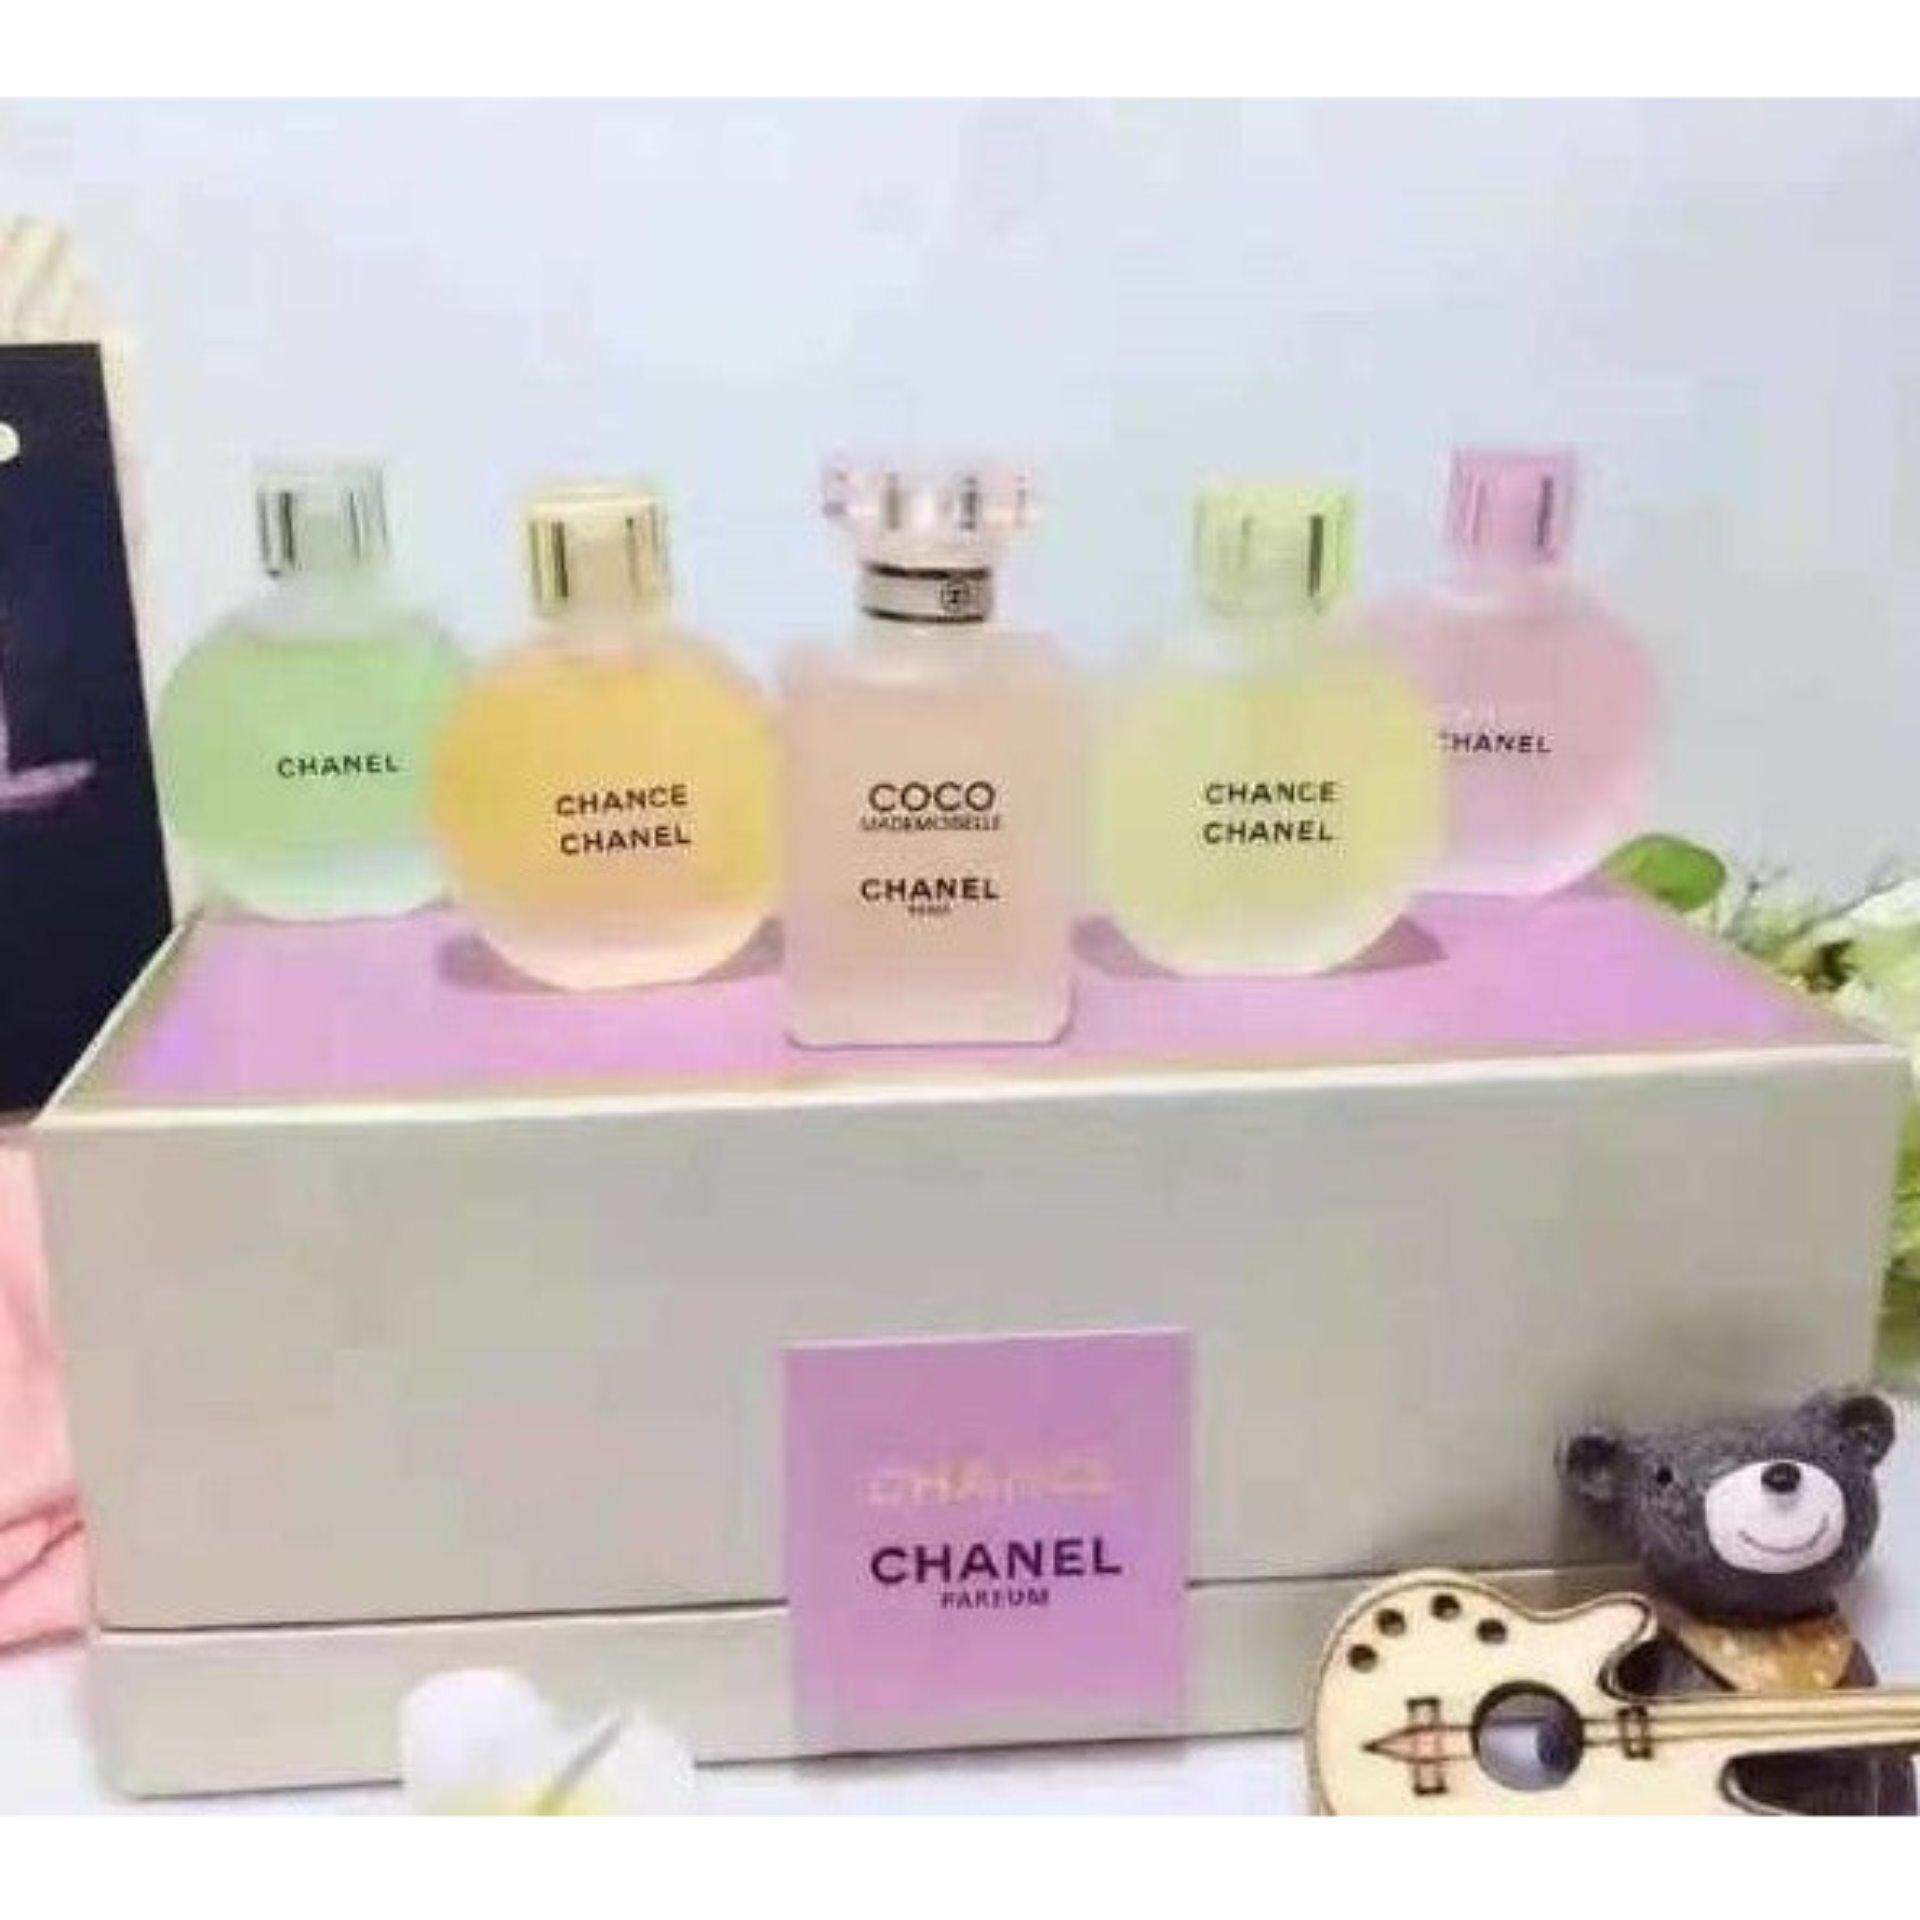 fe75ad25317 Chanel Limited Edition 5 in 1 Perfume Travel Set Chance and Coco  Mademoiselle- RARE